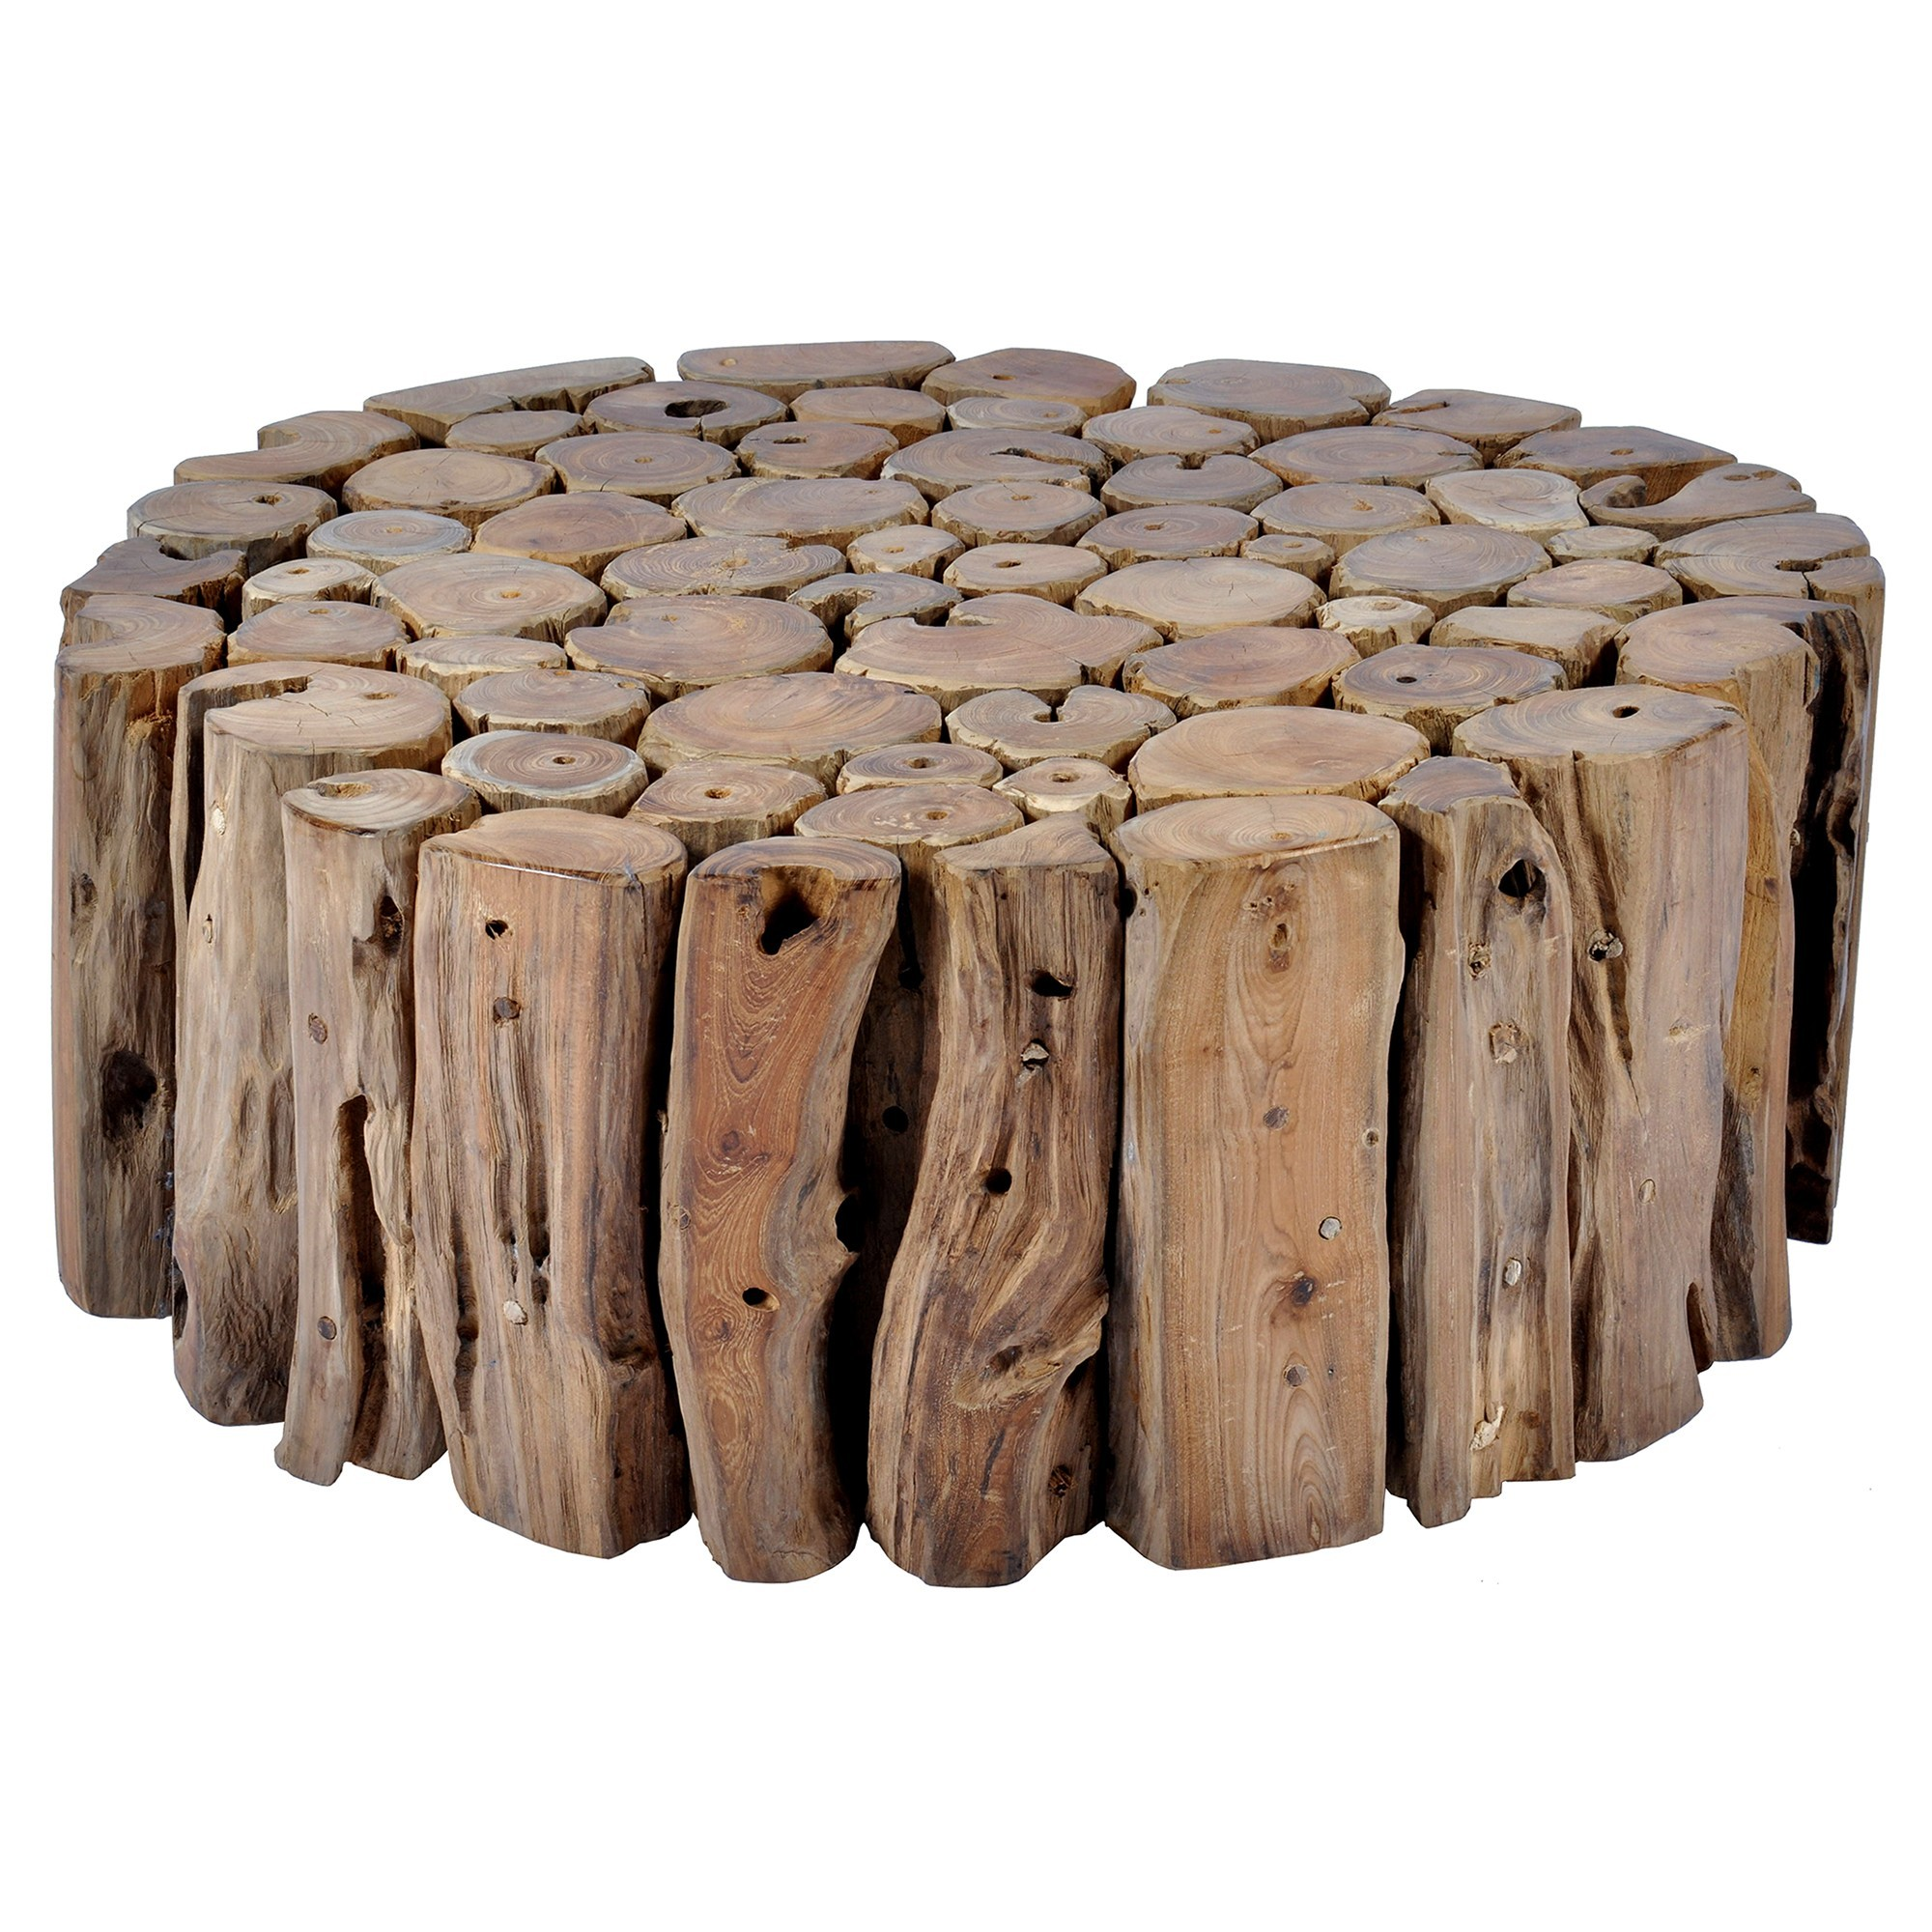 Tropica Woody Commercial Grade Reclaimed Teak Log Round Coffee Table, 80cm